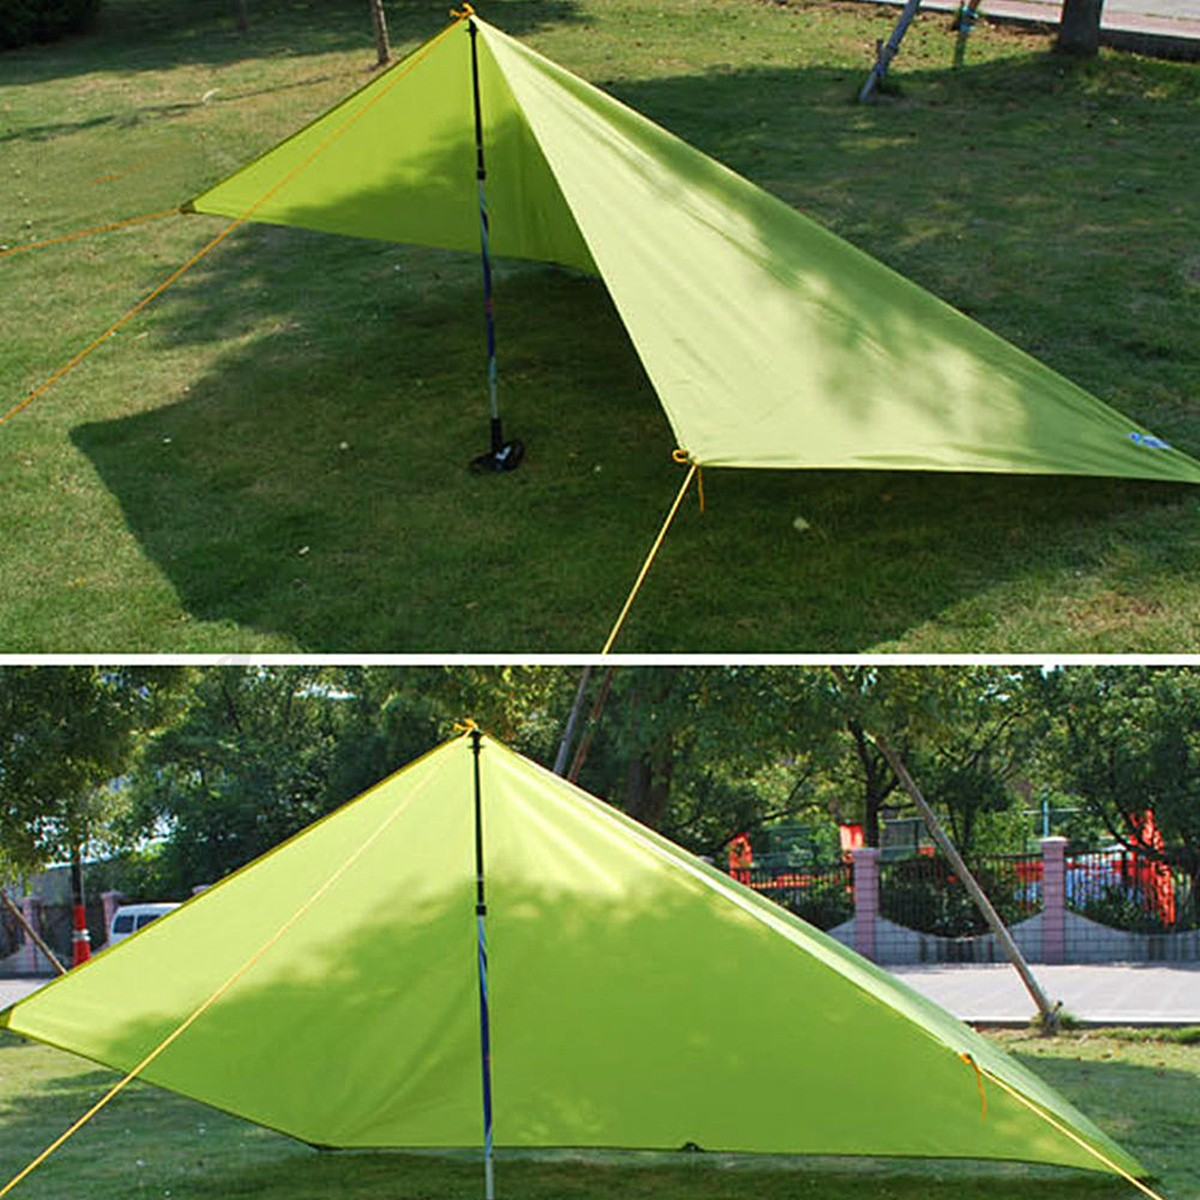 Picnic Canopy Shelter : Portable outdoor camping beach picnic pad cushion canopy